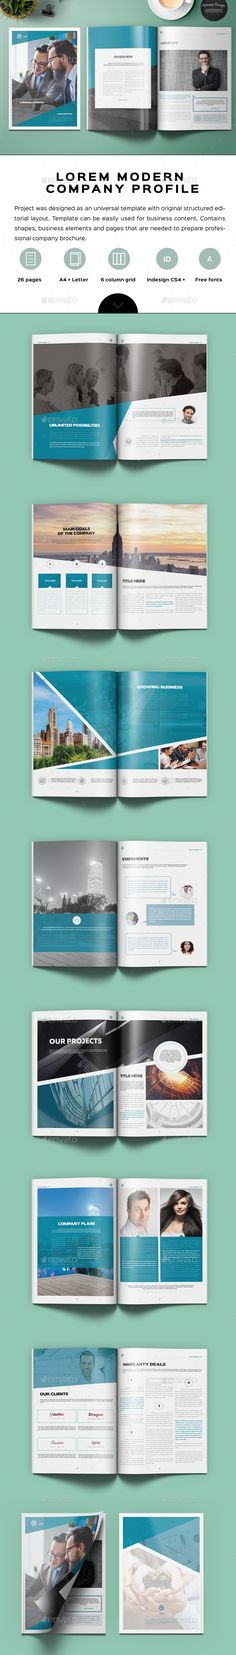 Portfolio Brochure Template #design #print Download http - interior design brochure template